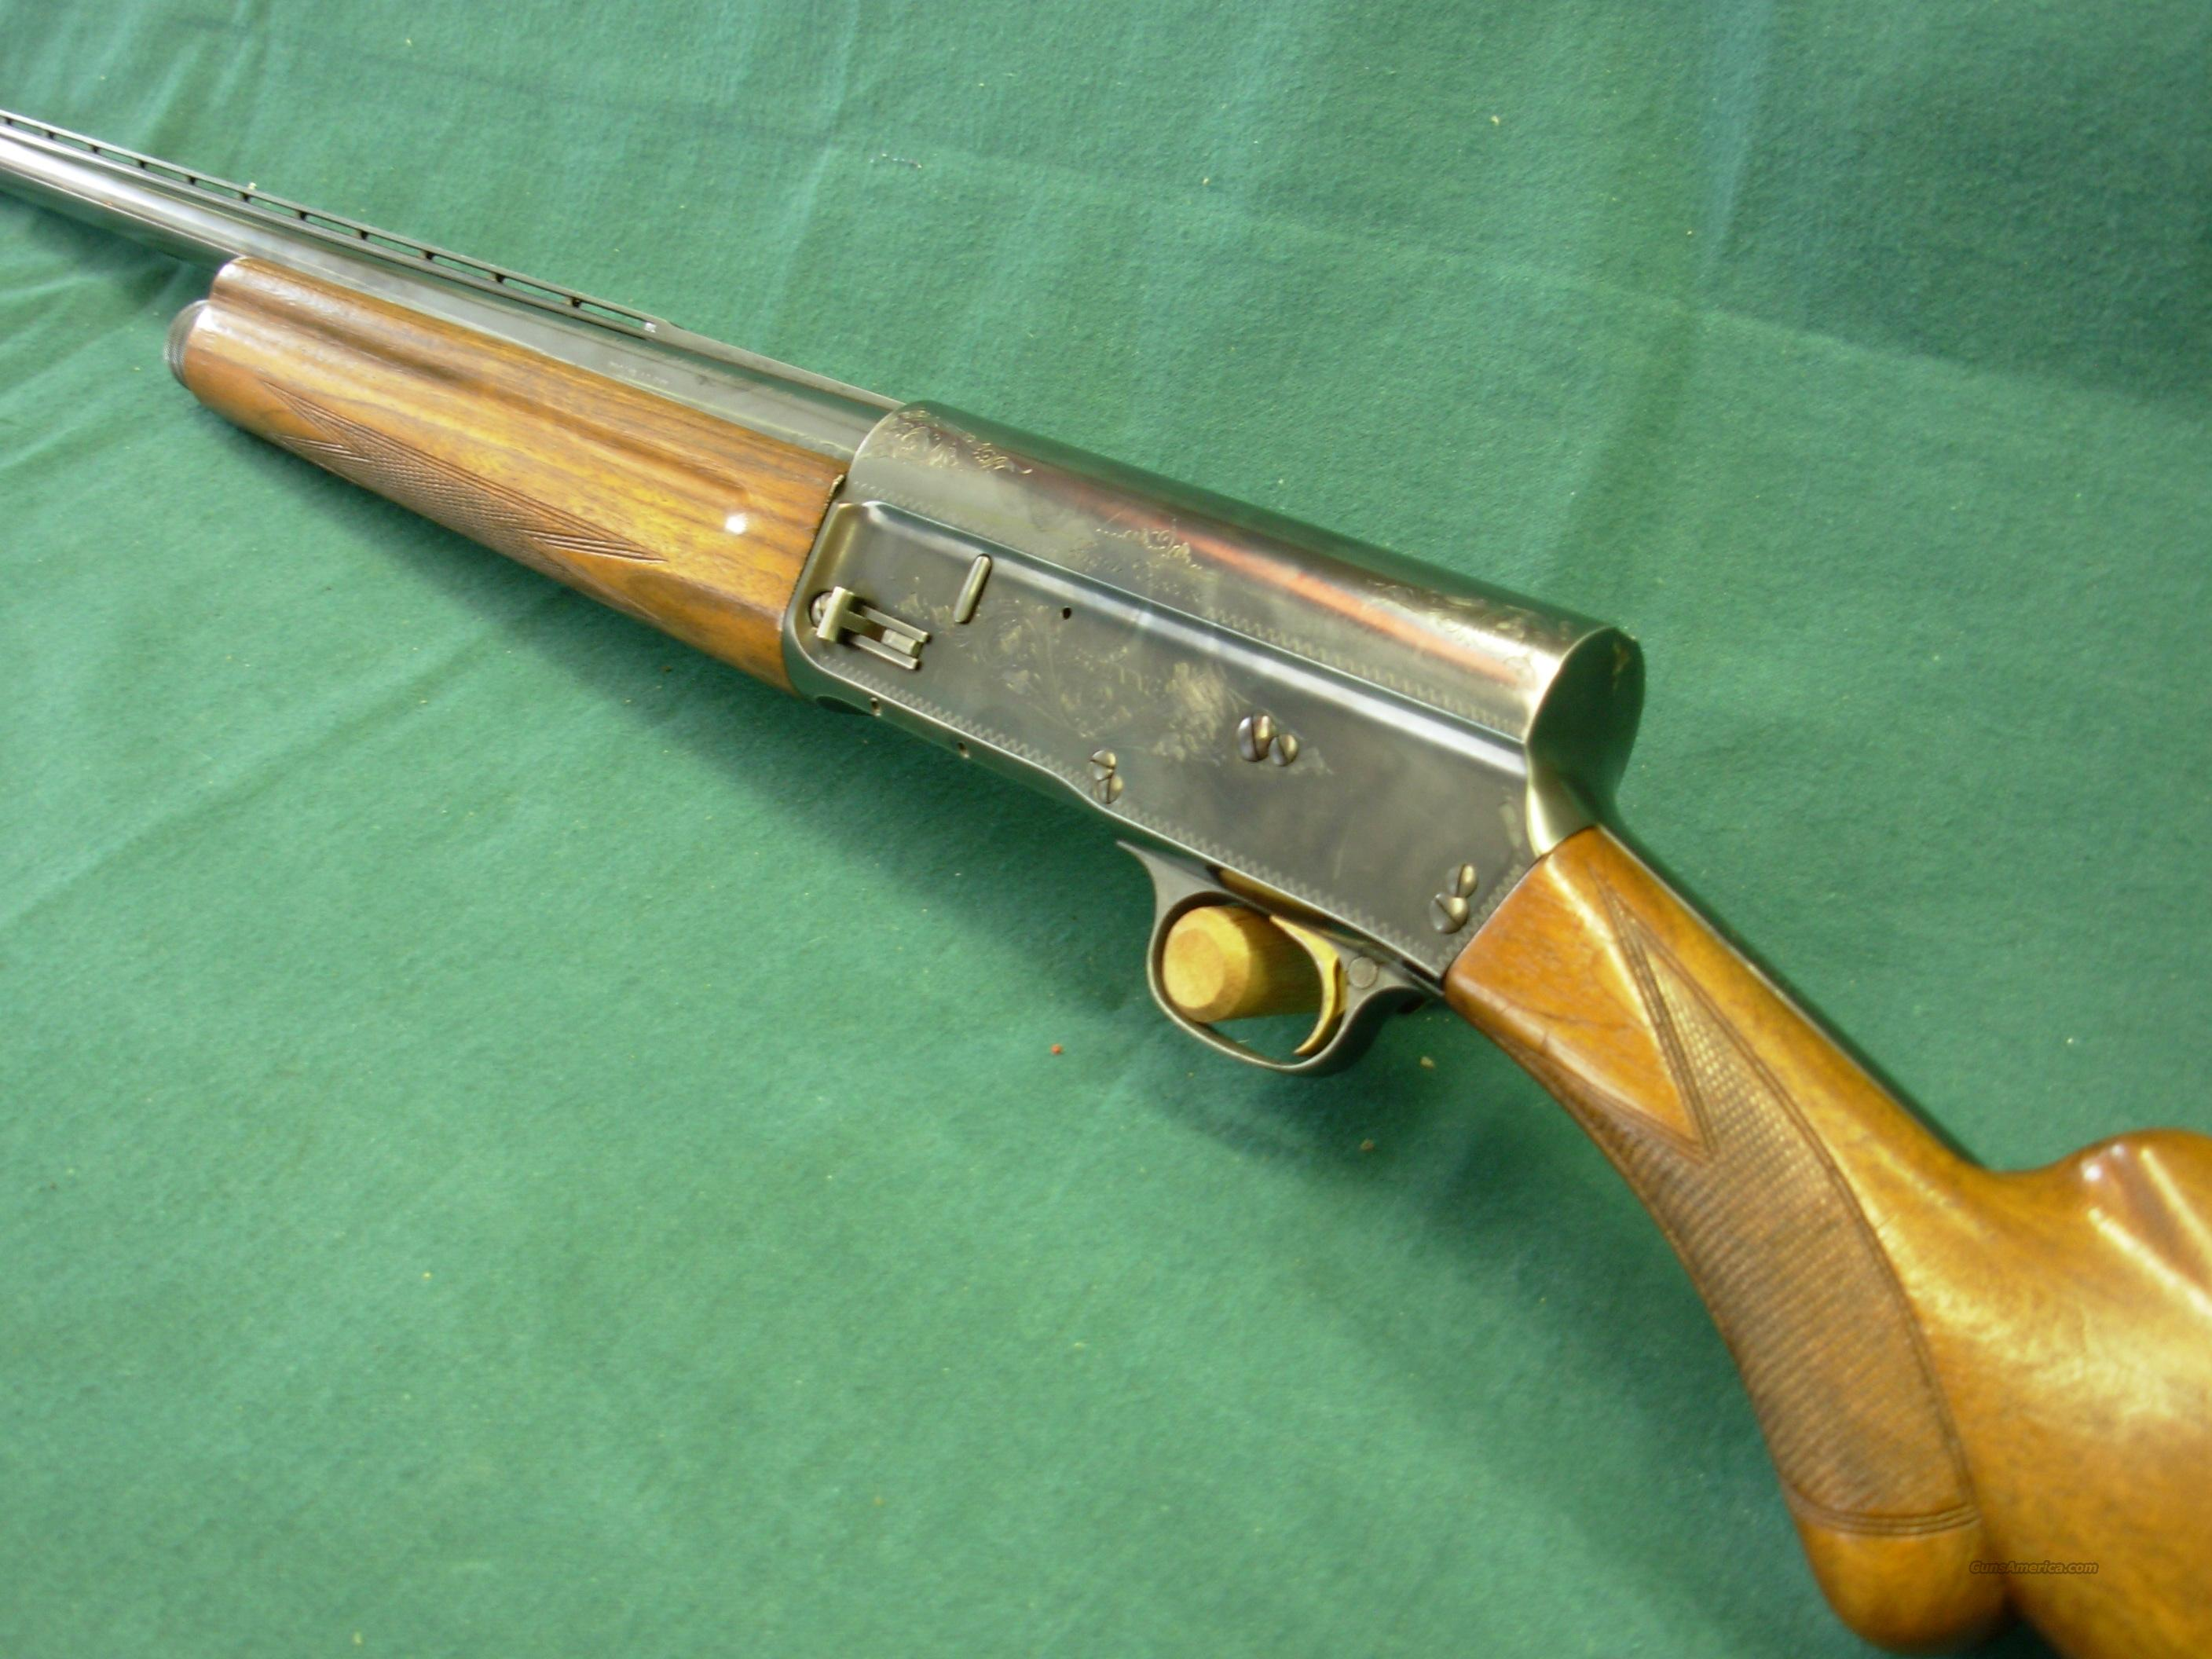 Browning Auto 5 Light 12 with extra barrel  Guns > Shotguns > Browning Shotguns > Autoloaders > Hunting